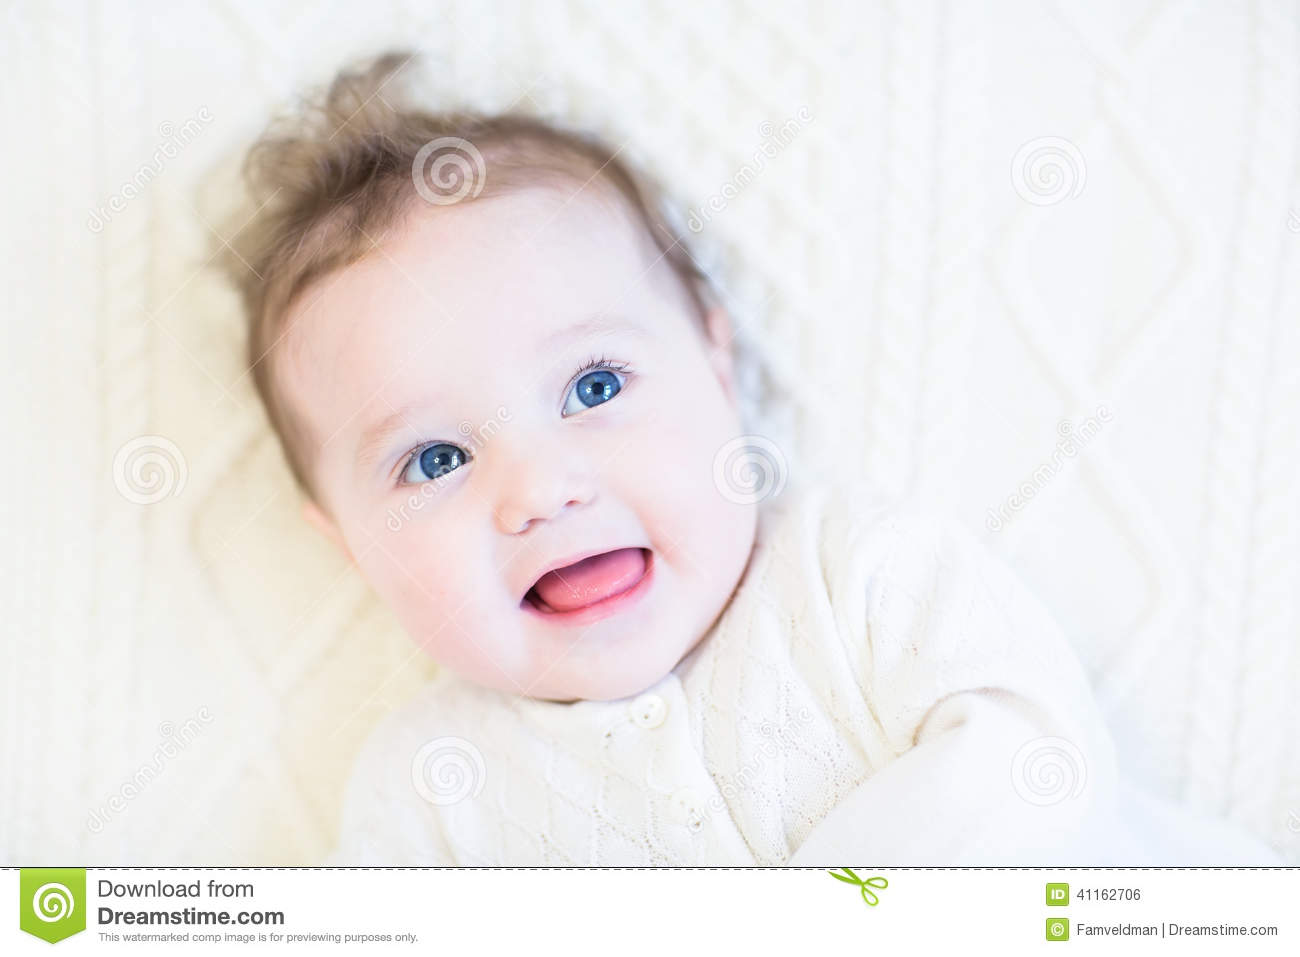 Awesome Adorable Baby Girl With Curly Hair On A White Cabl Stock Photo Hairstyles For Women Draintrainus